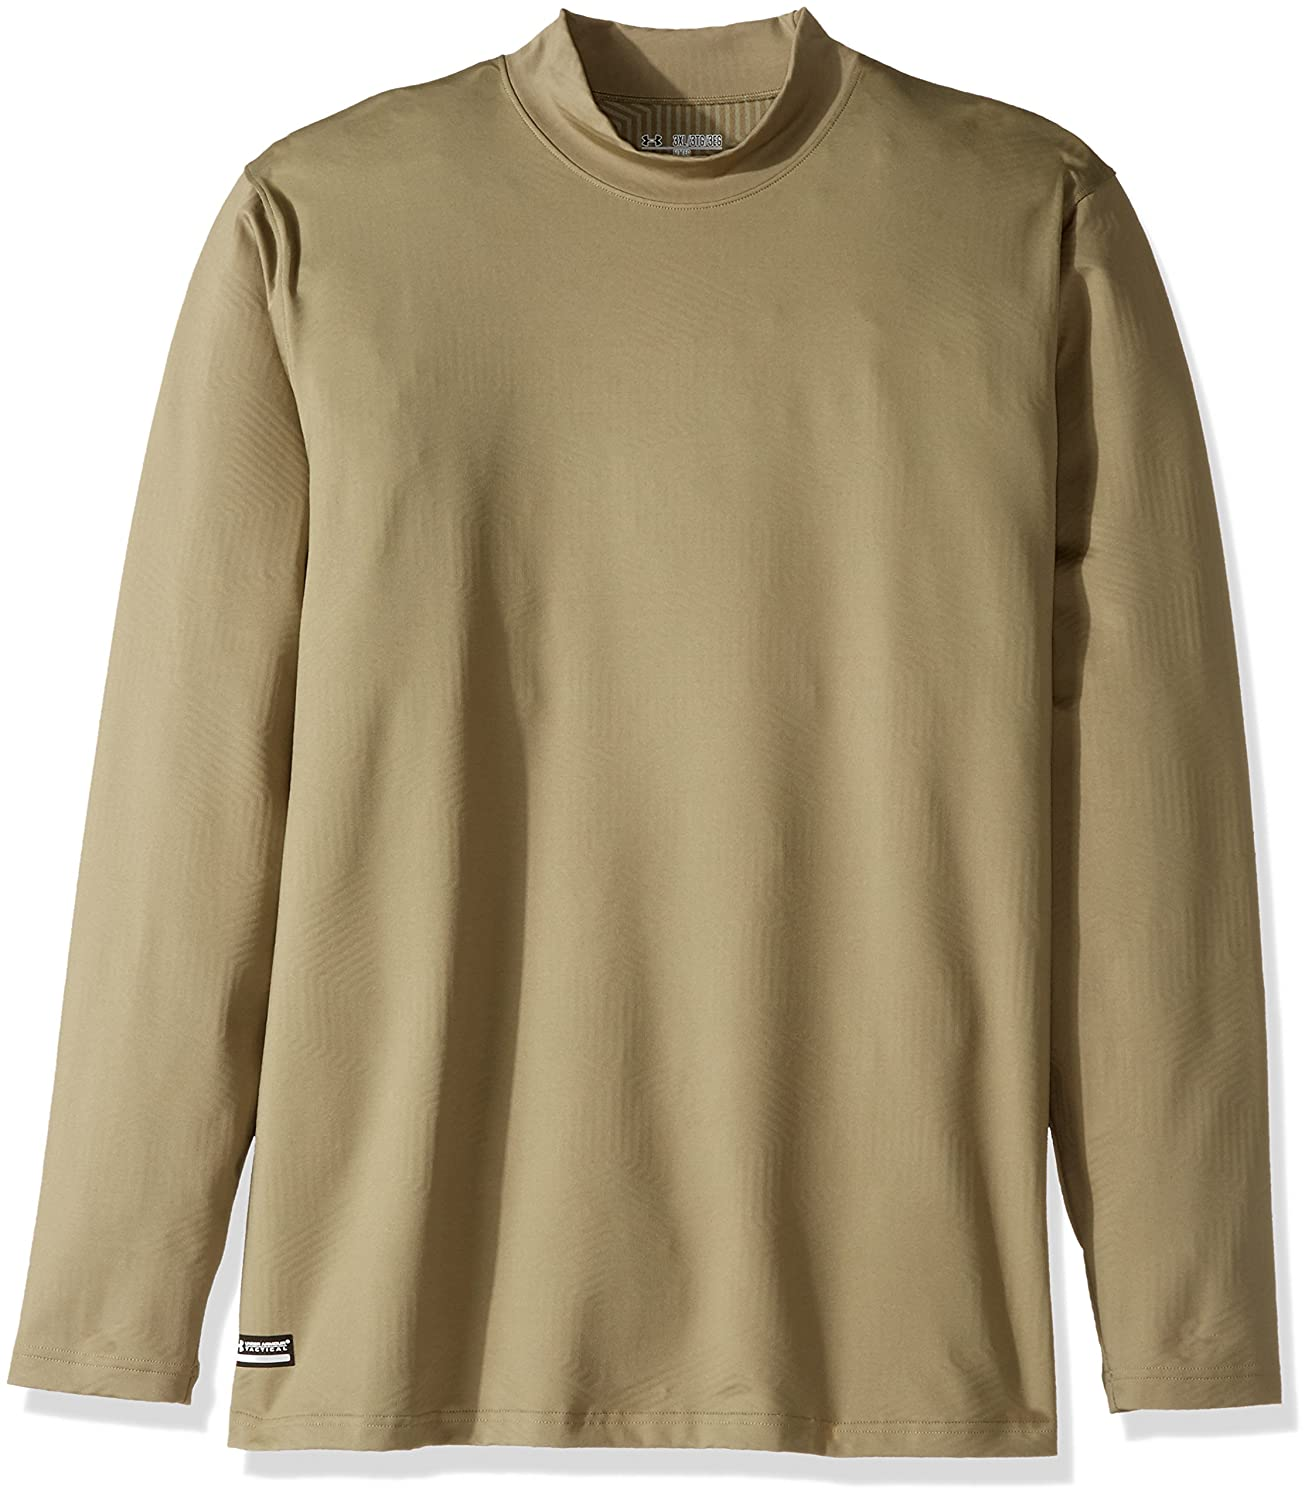 アンダーアーマーメンズColdGear Infrared Tactical Fitted Mock B01FXGOCZY 4L|Federal Tan Federal Tan 4L